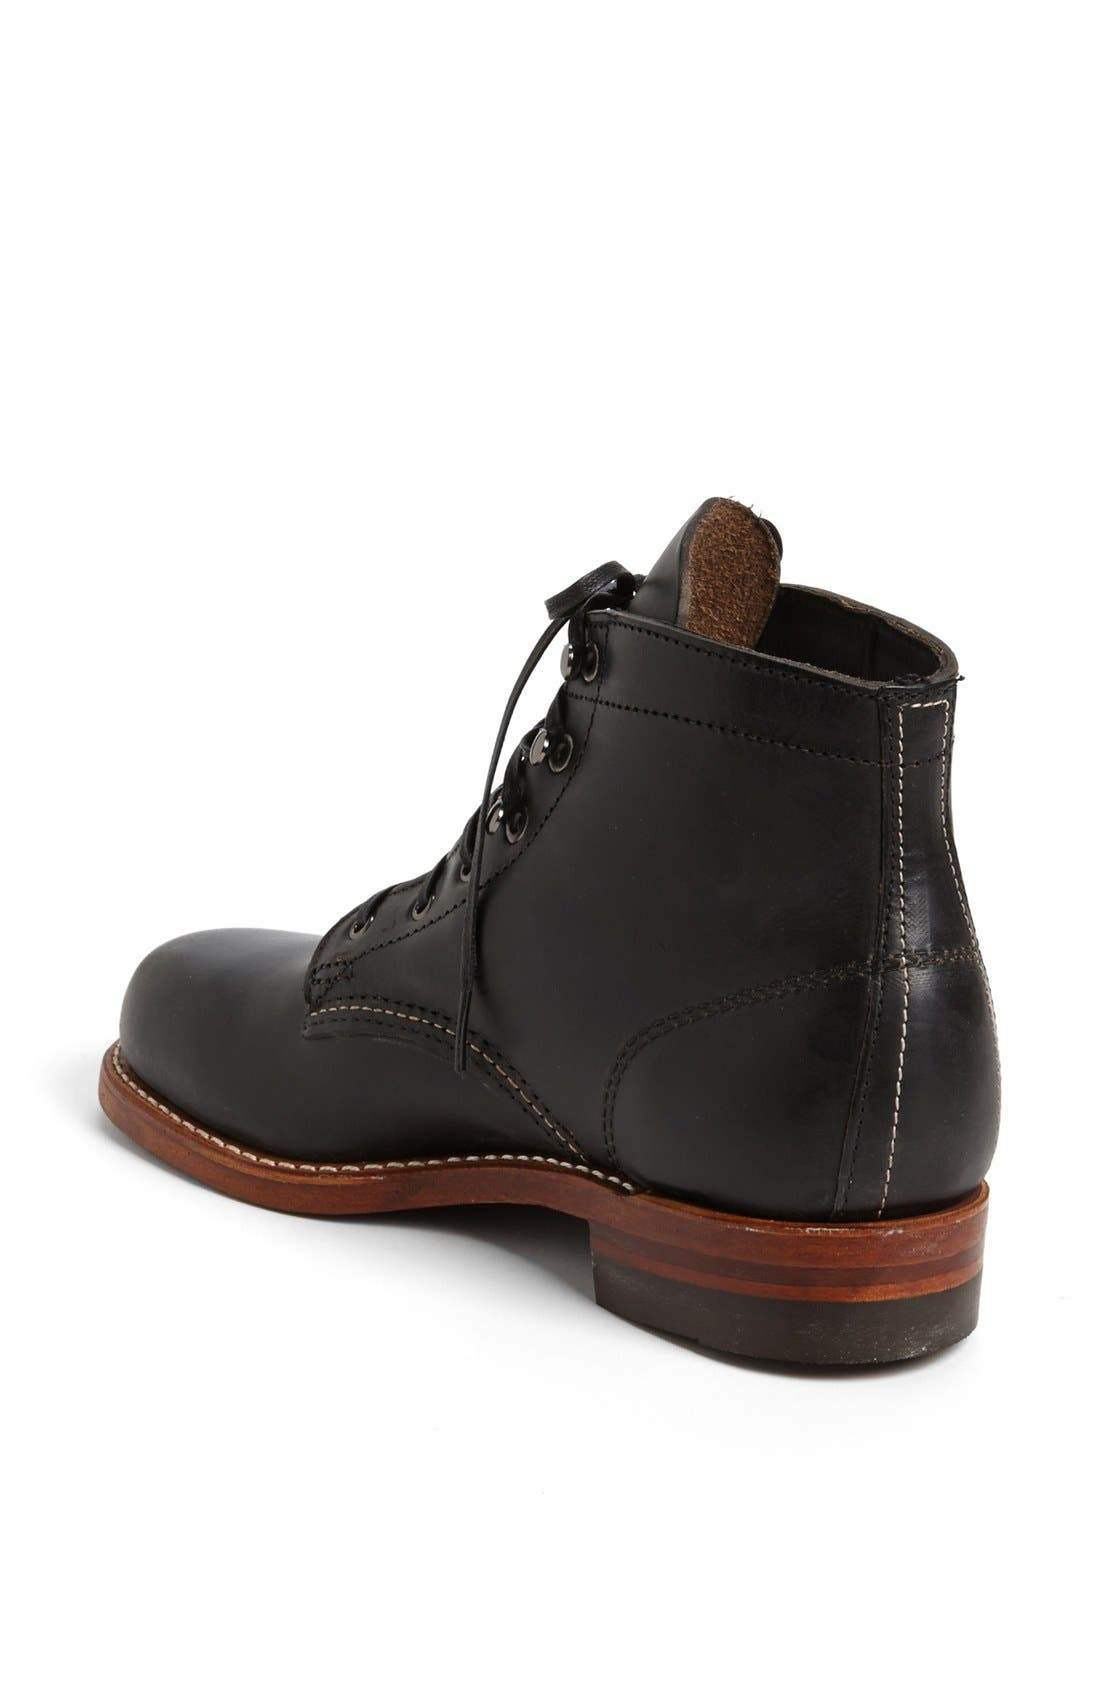 '1000 Mile' Leather Boot,                             Alternate thumbnail 4, color,                             001